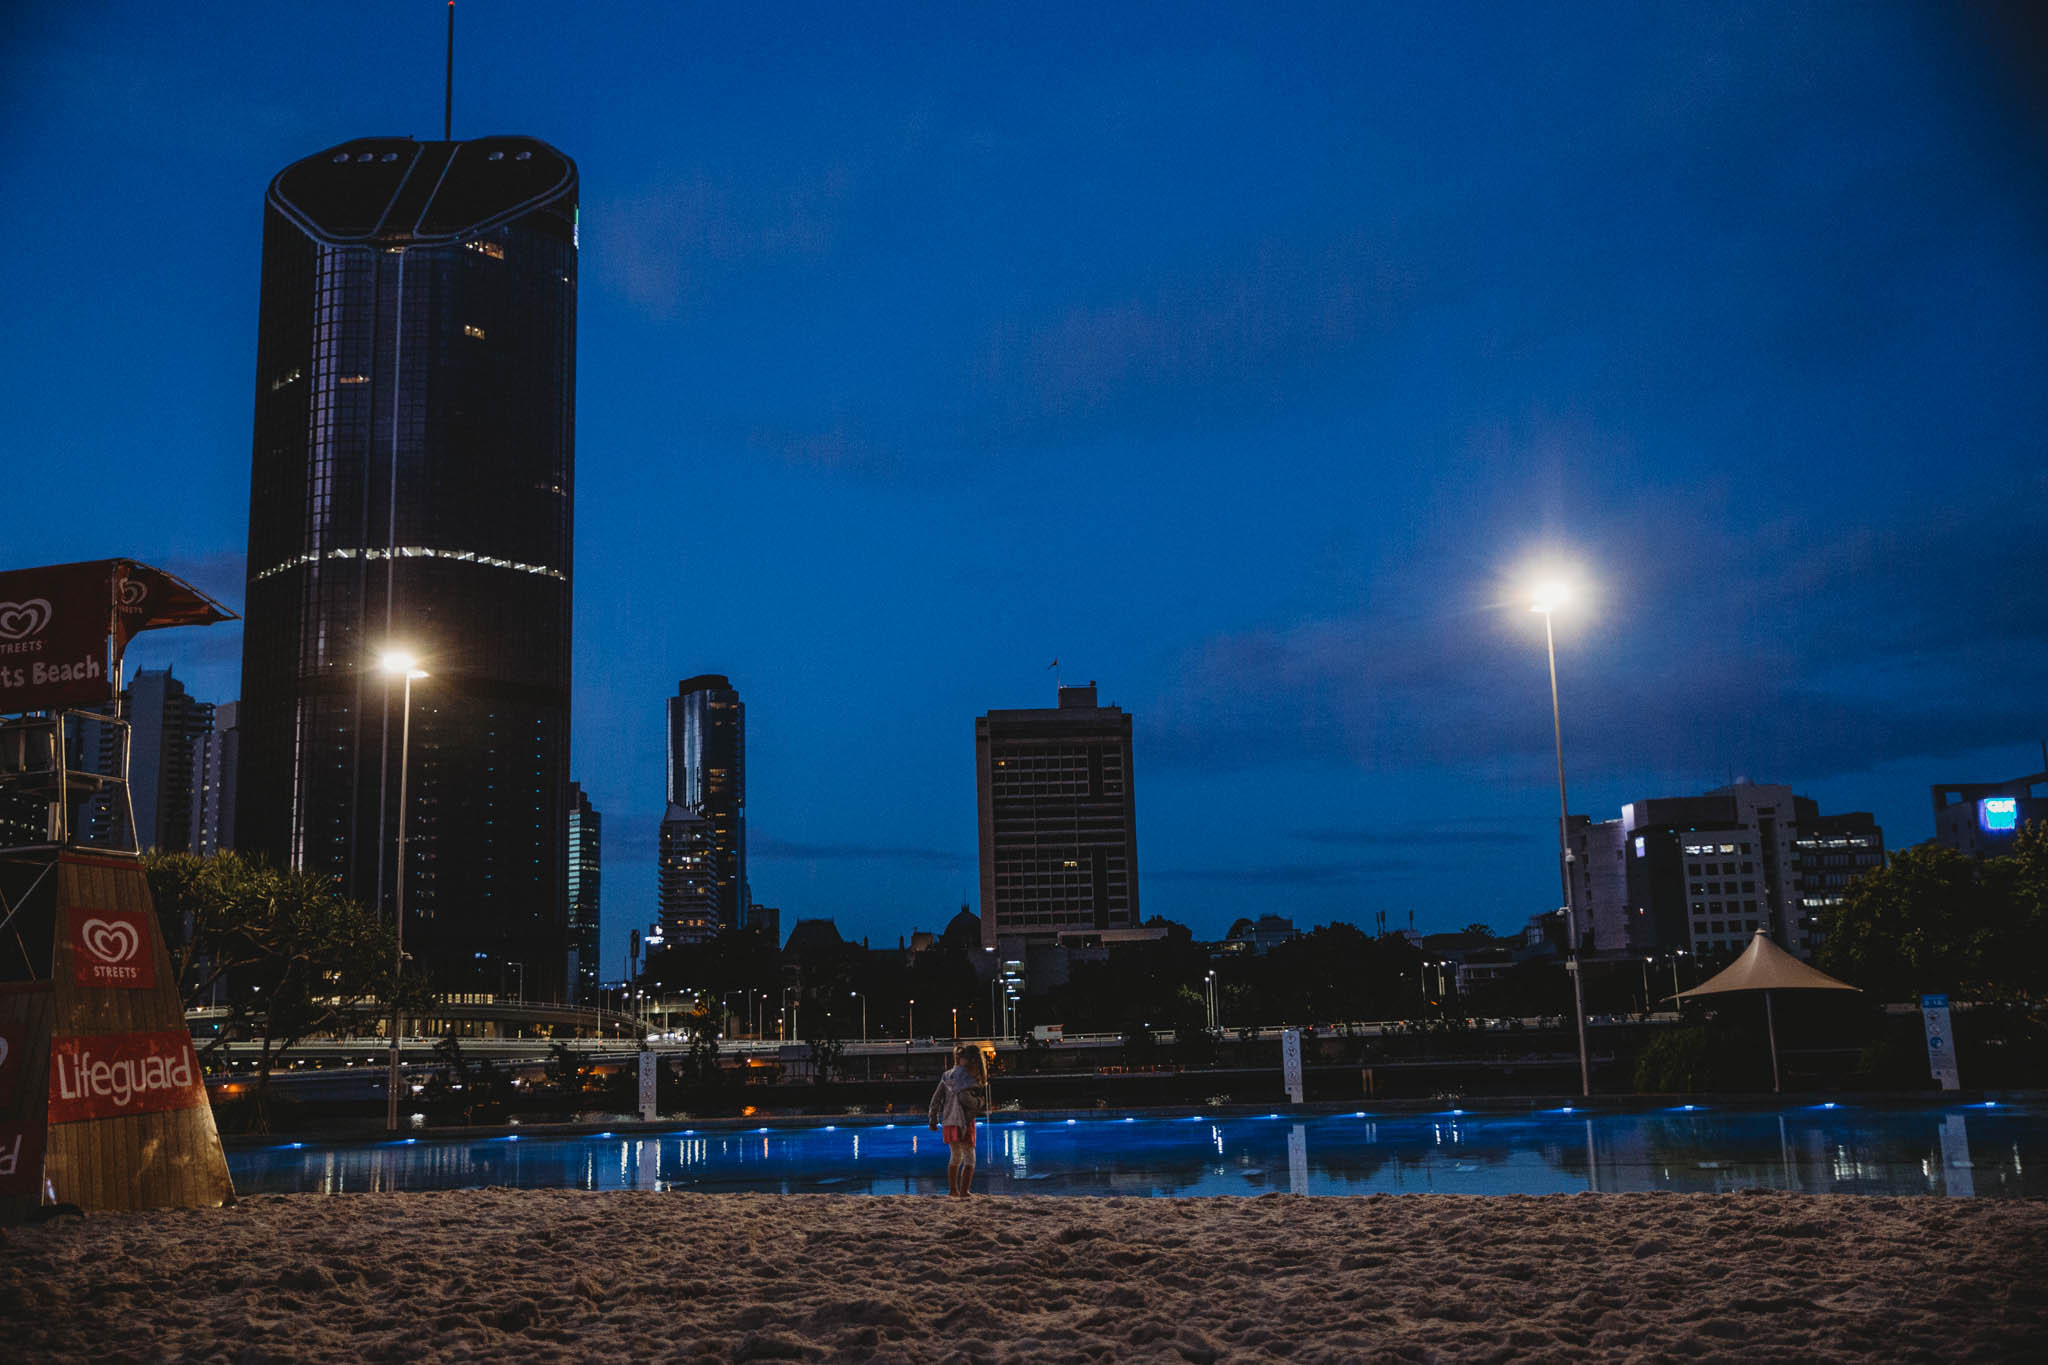 Nighttime play at the manmade city beach.